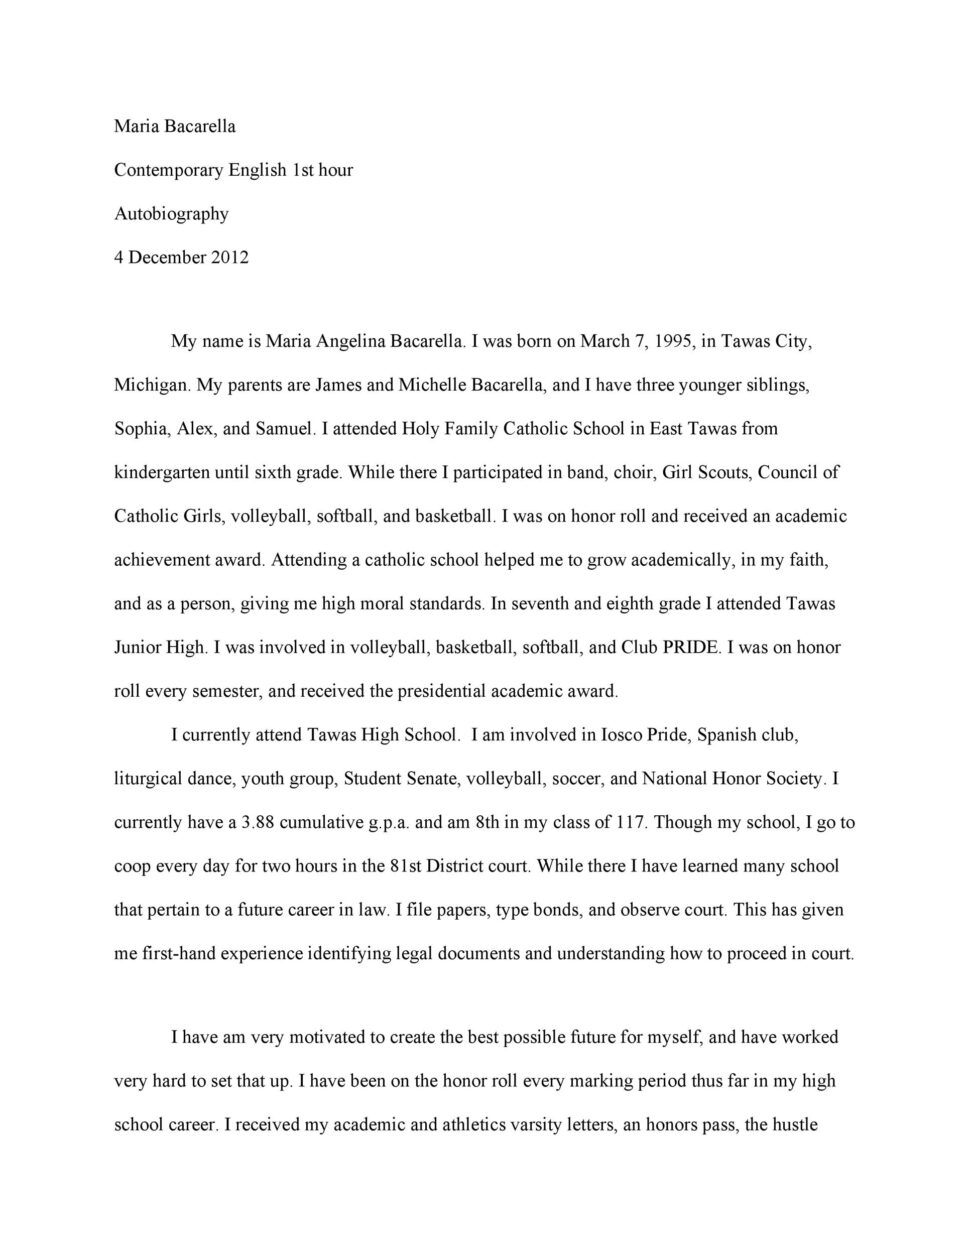 Large Size of Autobiography Example Essay Ixujezyso Template Helper Society Analytical Writing Analysis